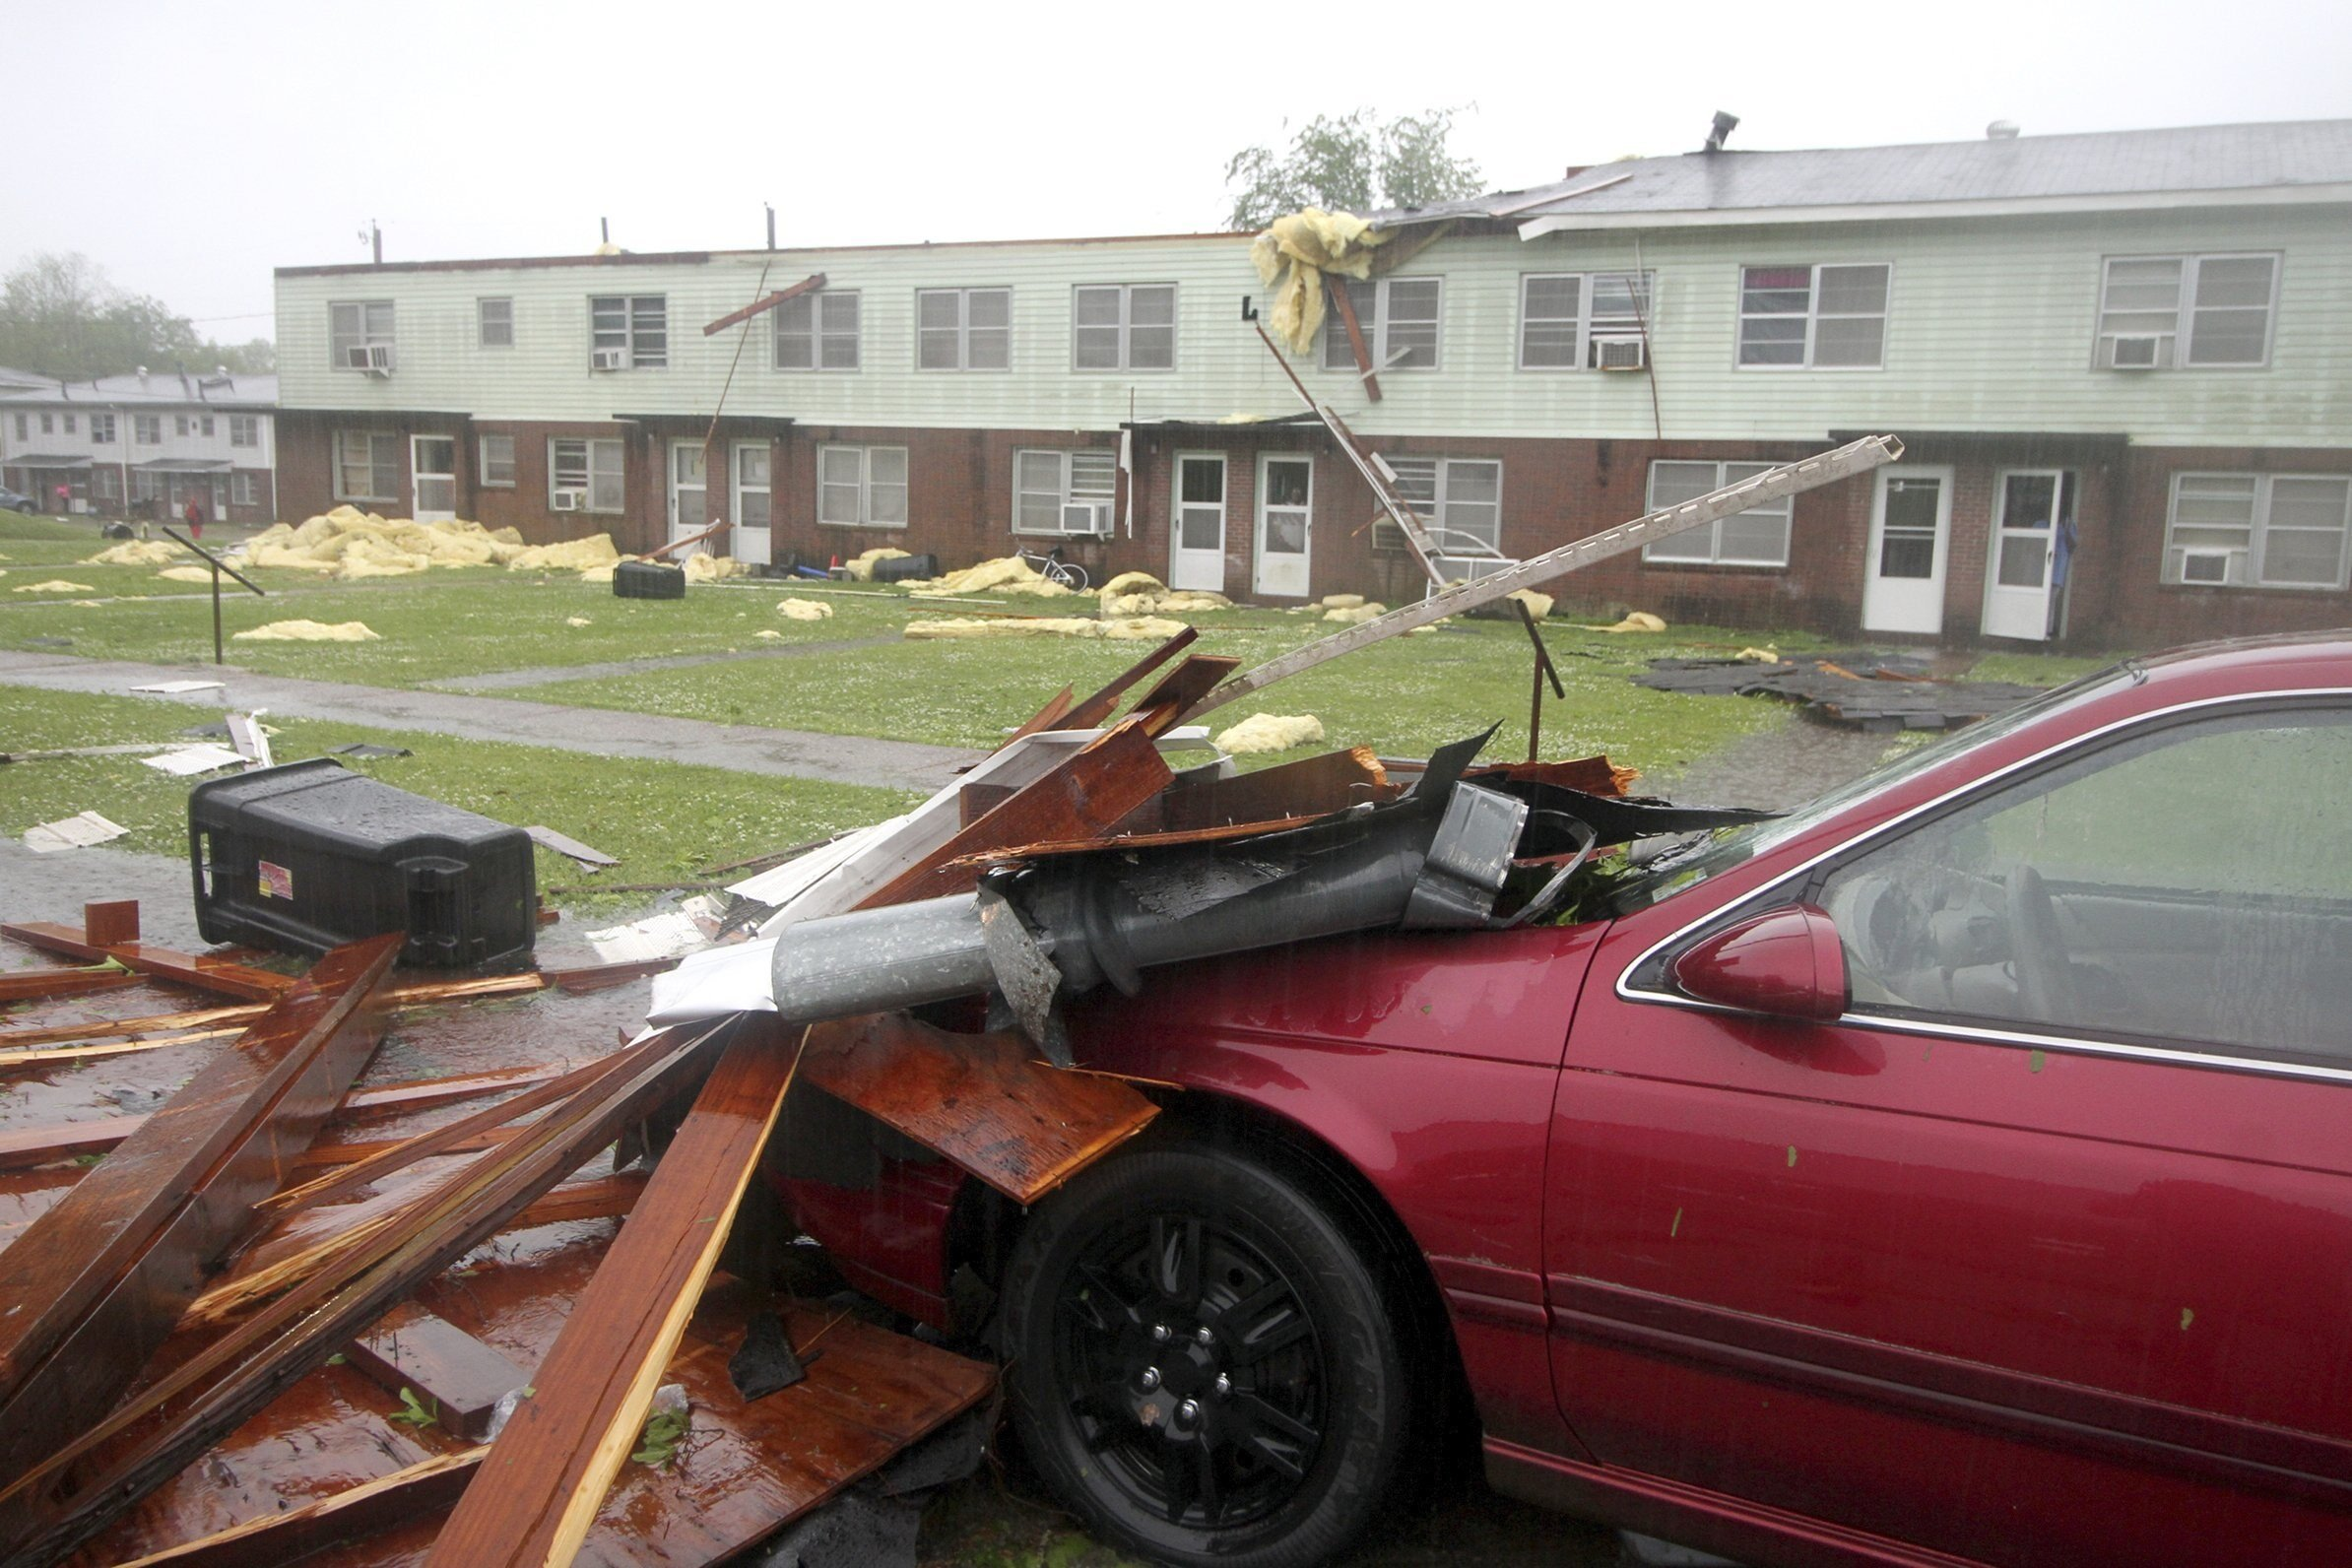 A parked car covered in debris sits next to an apartment complex in Meridian, Mississippi, after a possible tornado hit the area Saturday, April 14, 2018.